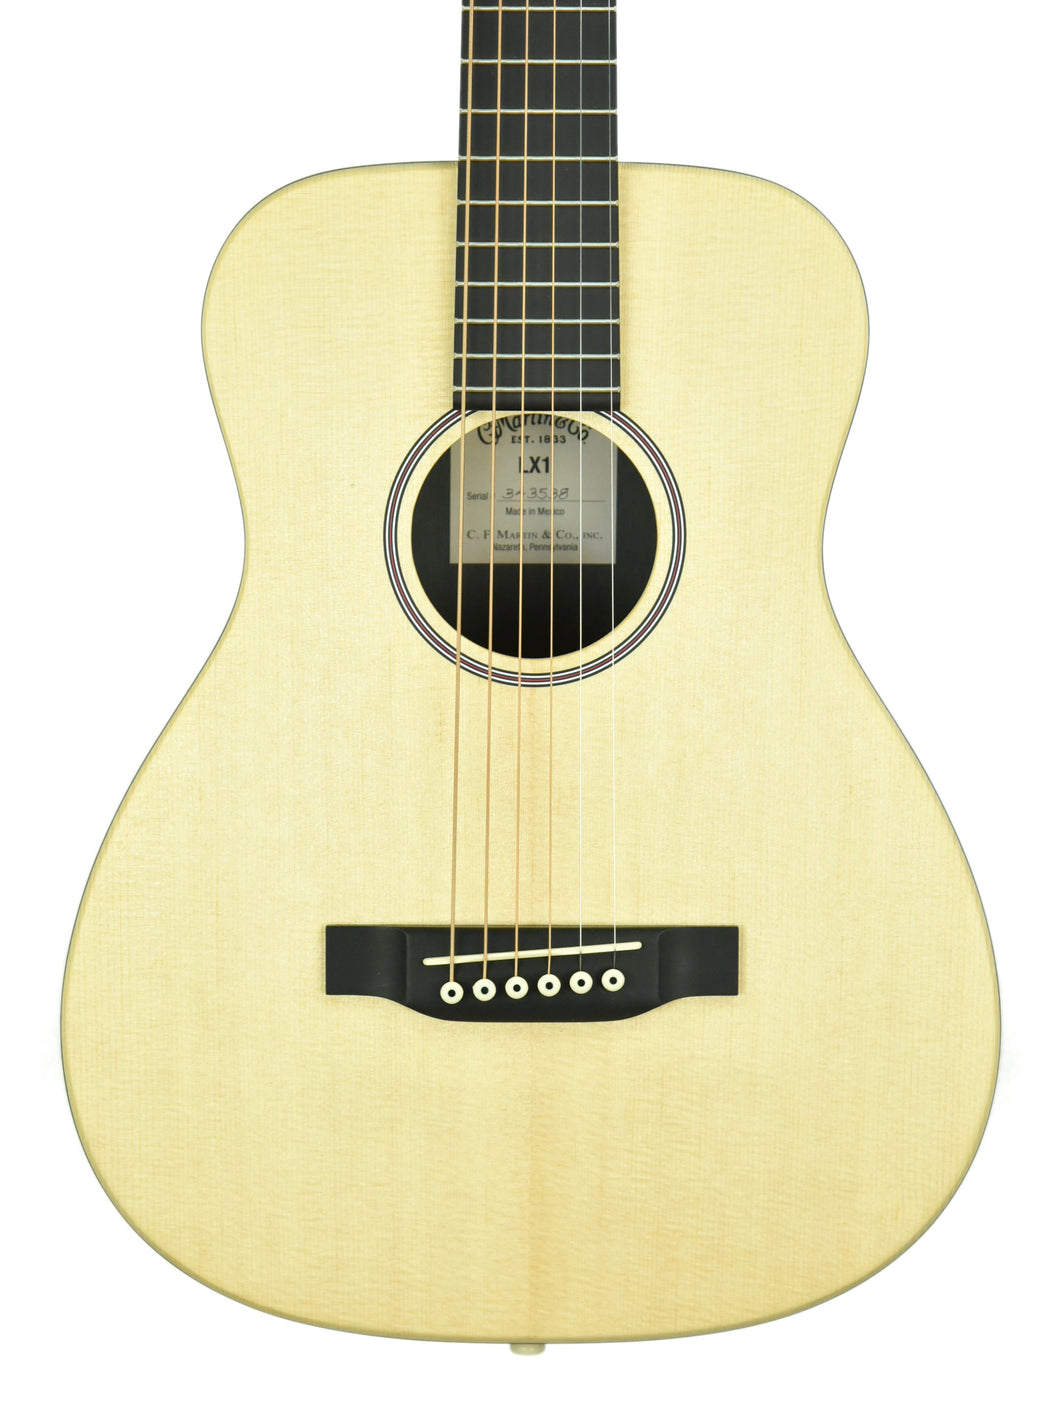 Martin LX1 Little Martin Acoustic Guitar 343473 - The Music Gallery